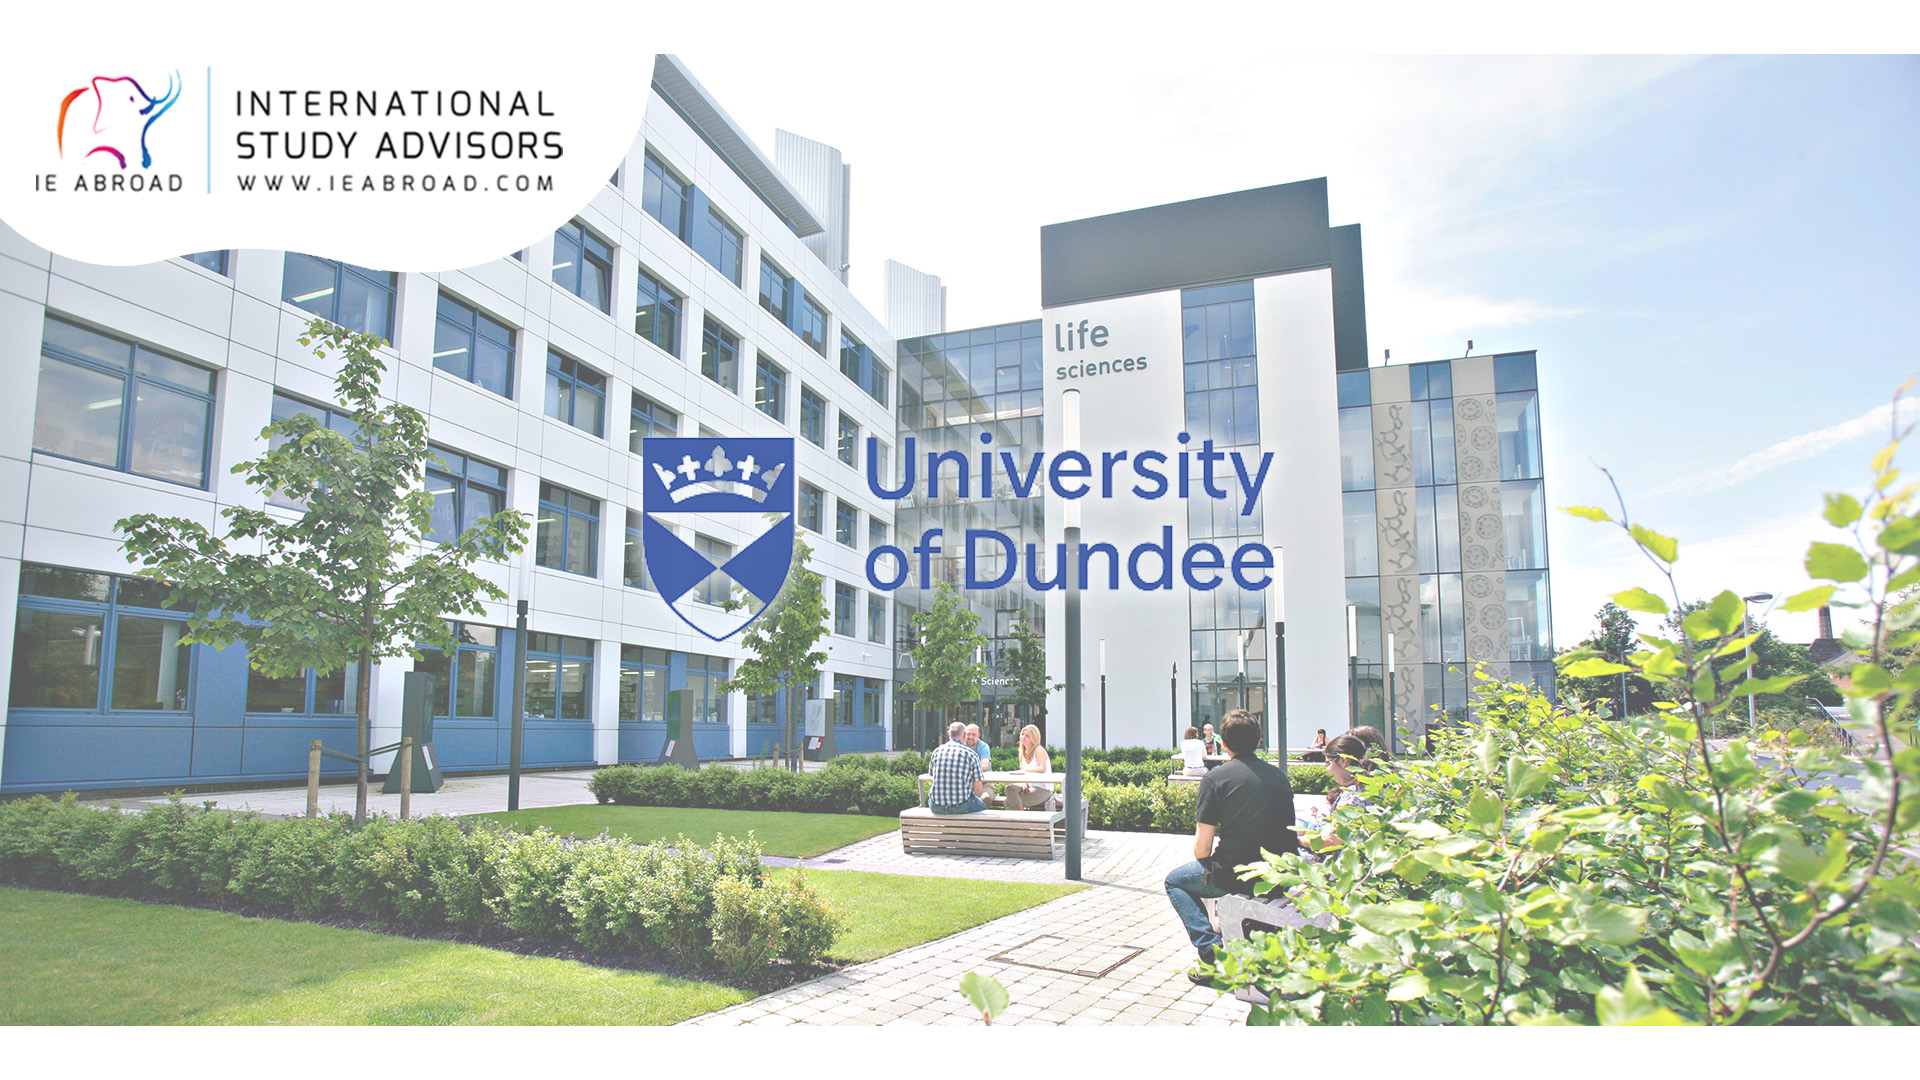 Fast & Curious: University of Dundee